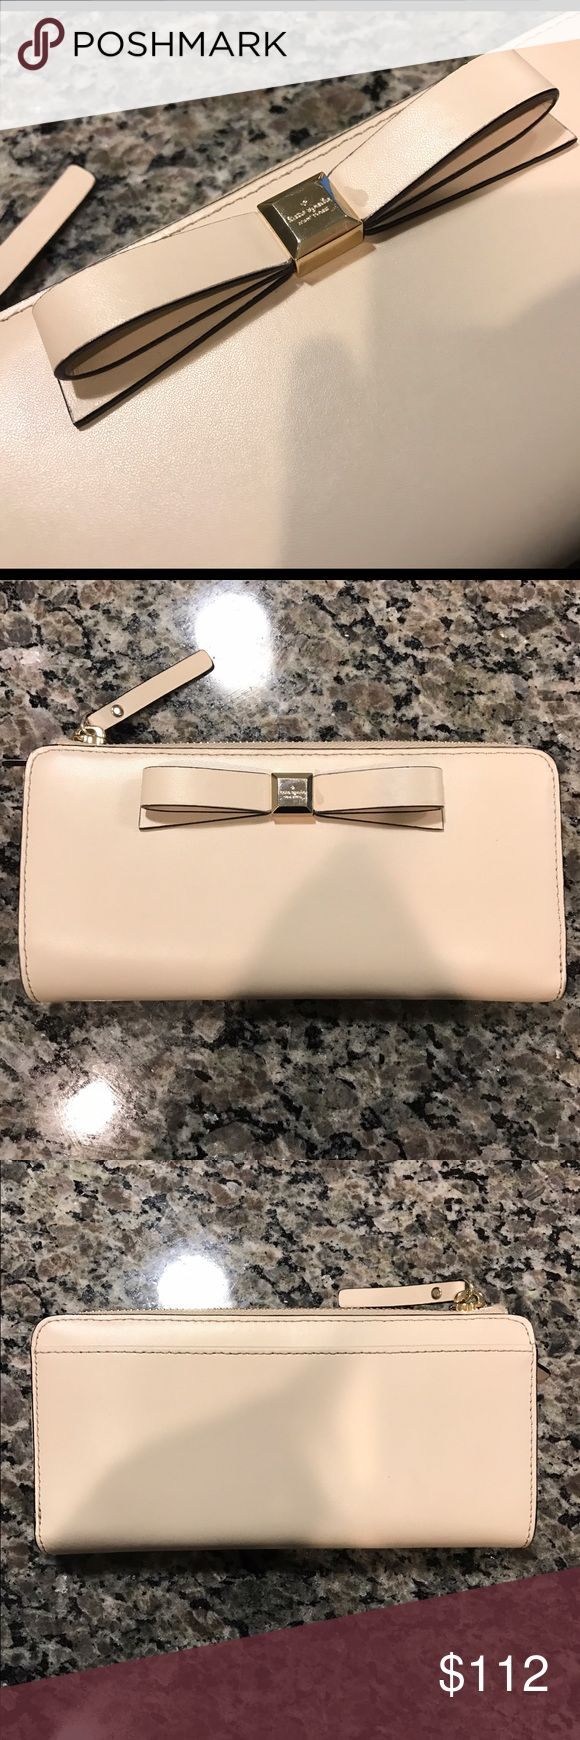 🎀 Kate Spade Beige Clutch Nisha WLRU2133 Montford Park Smooth Perf Beige Wallet, Super Cute & Neutral enough to go with any outfit, Classy & in Great Condition 💖 kate spade Bags Wallets